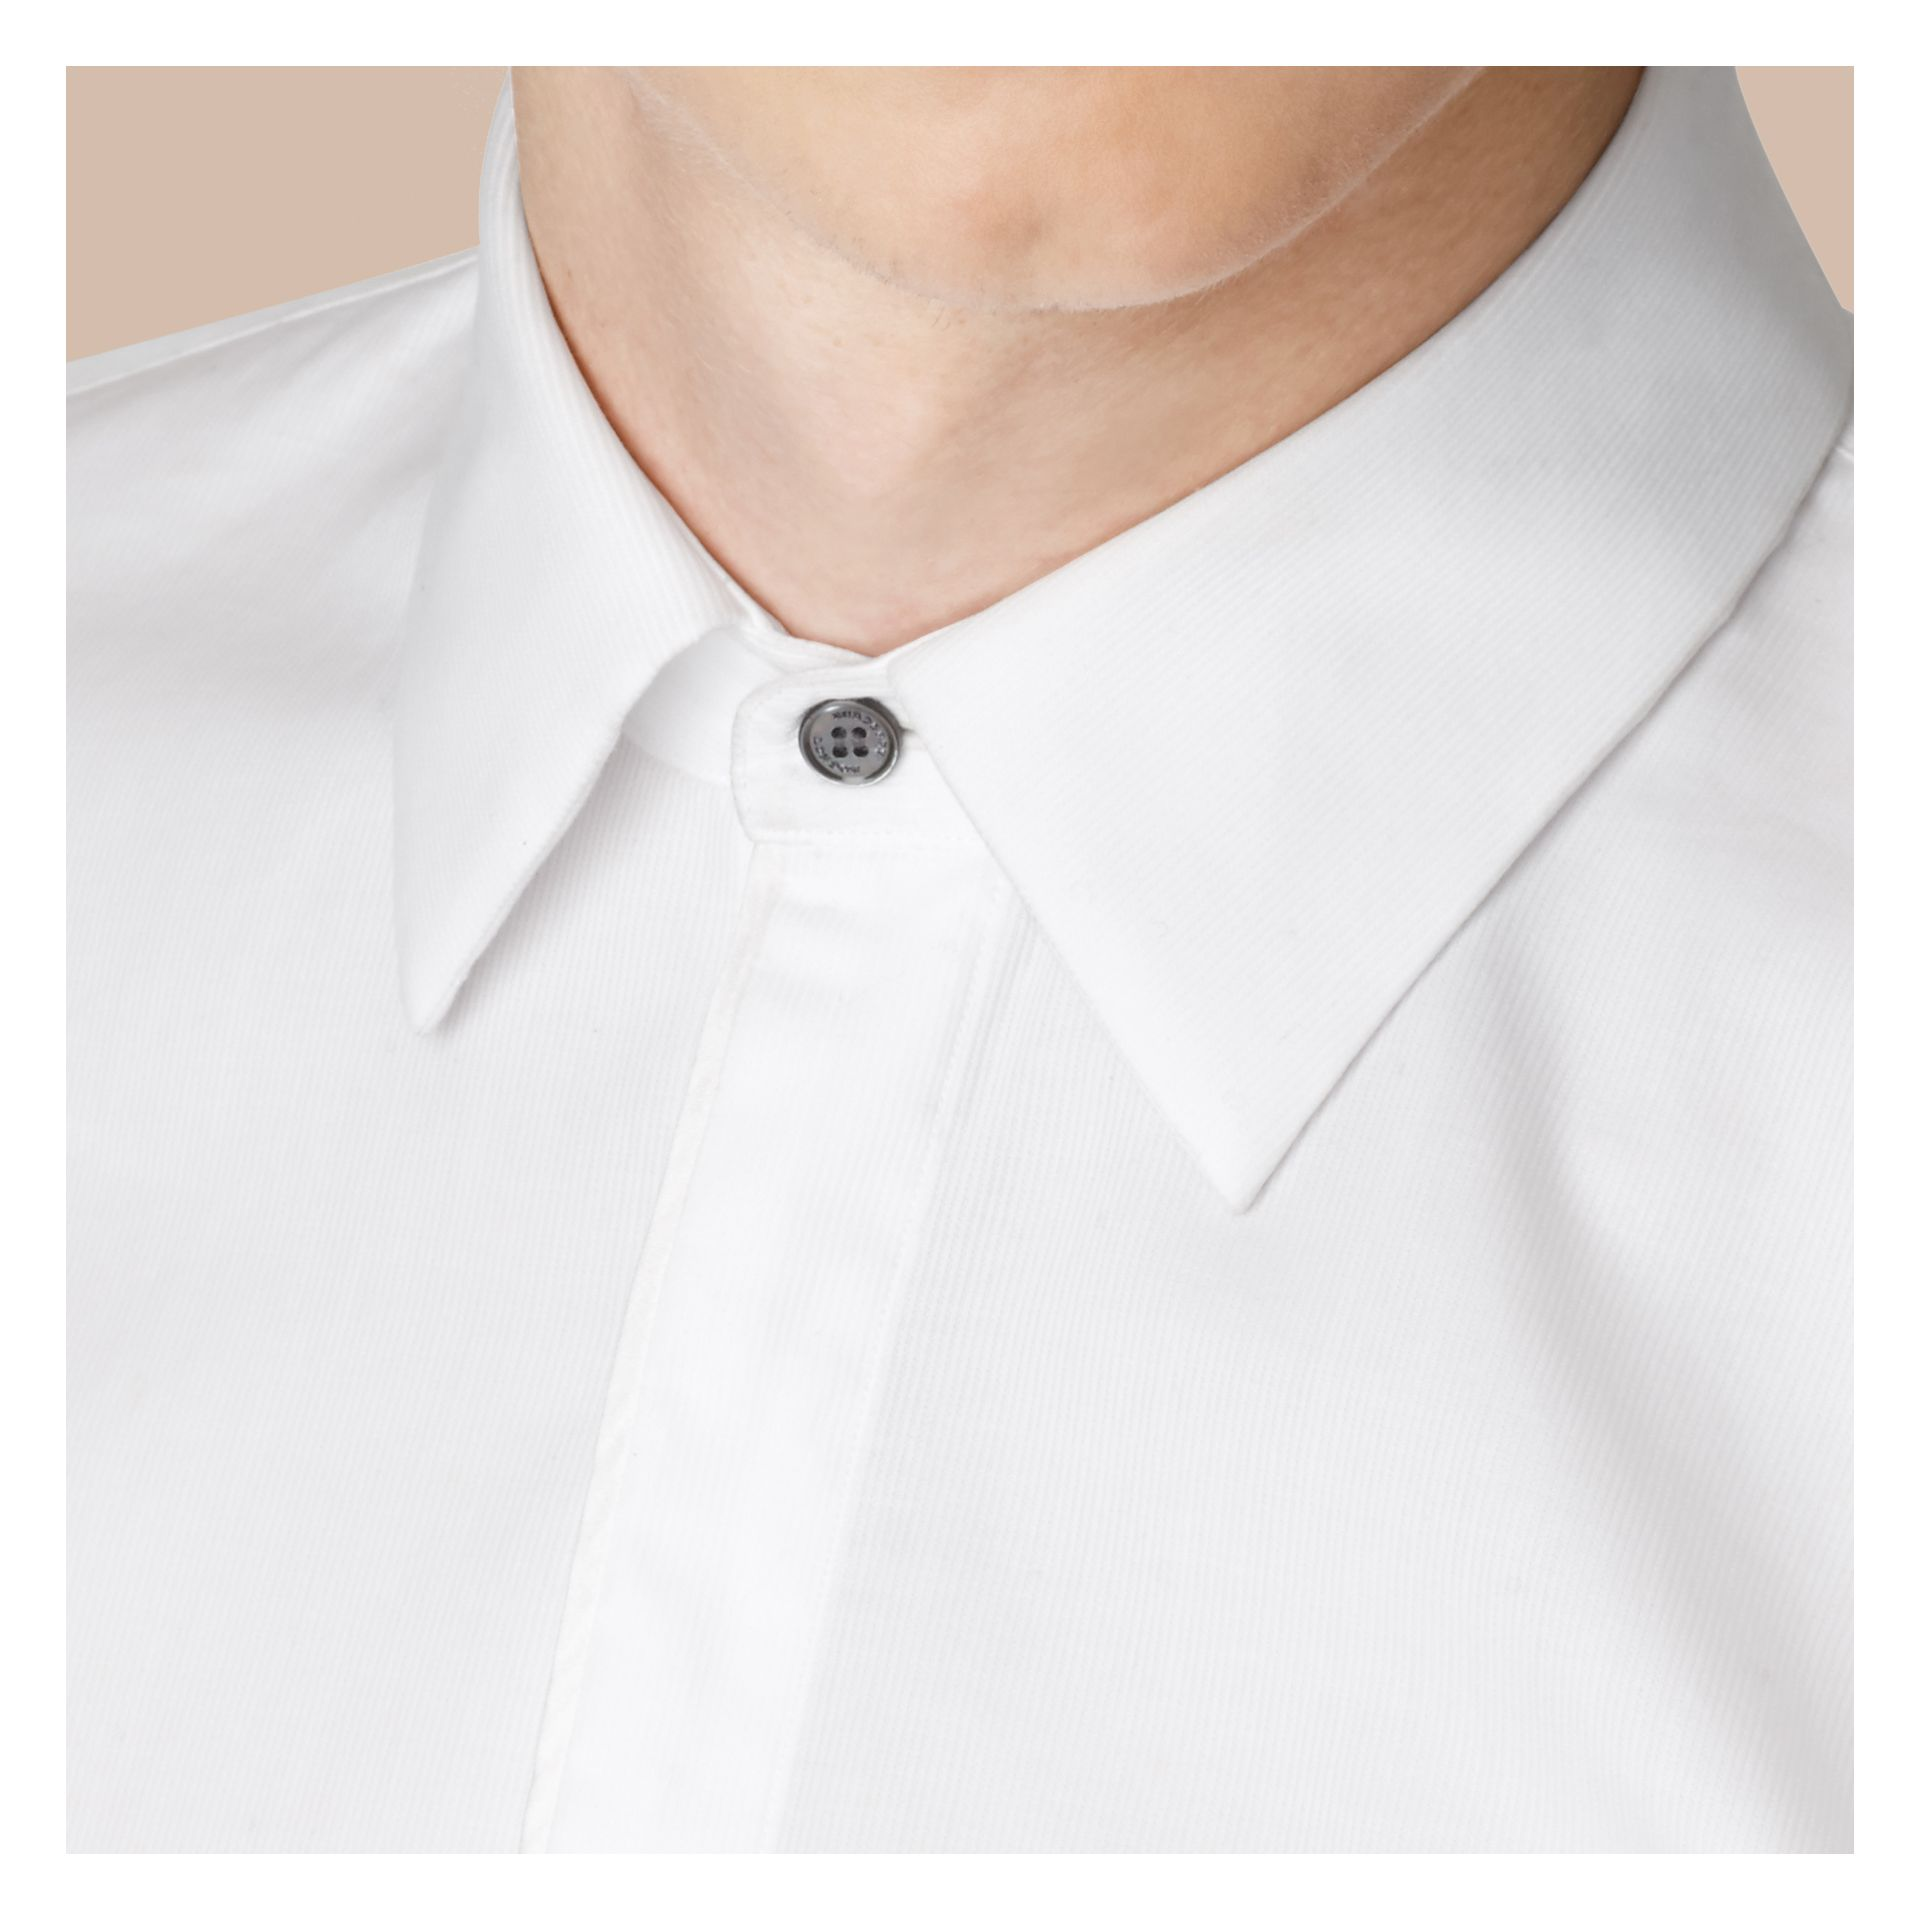 Slim Fit Double-cuff Cotton Dress Shirt in White - Men | Burberry - gallery image 5